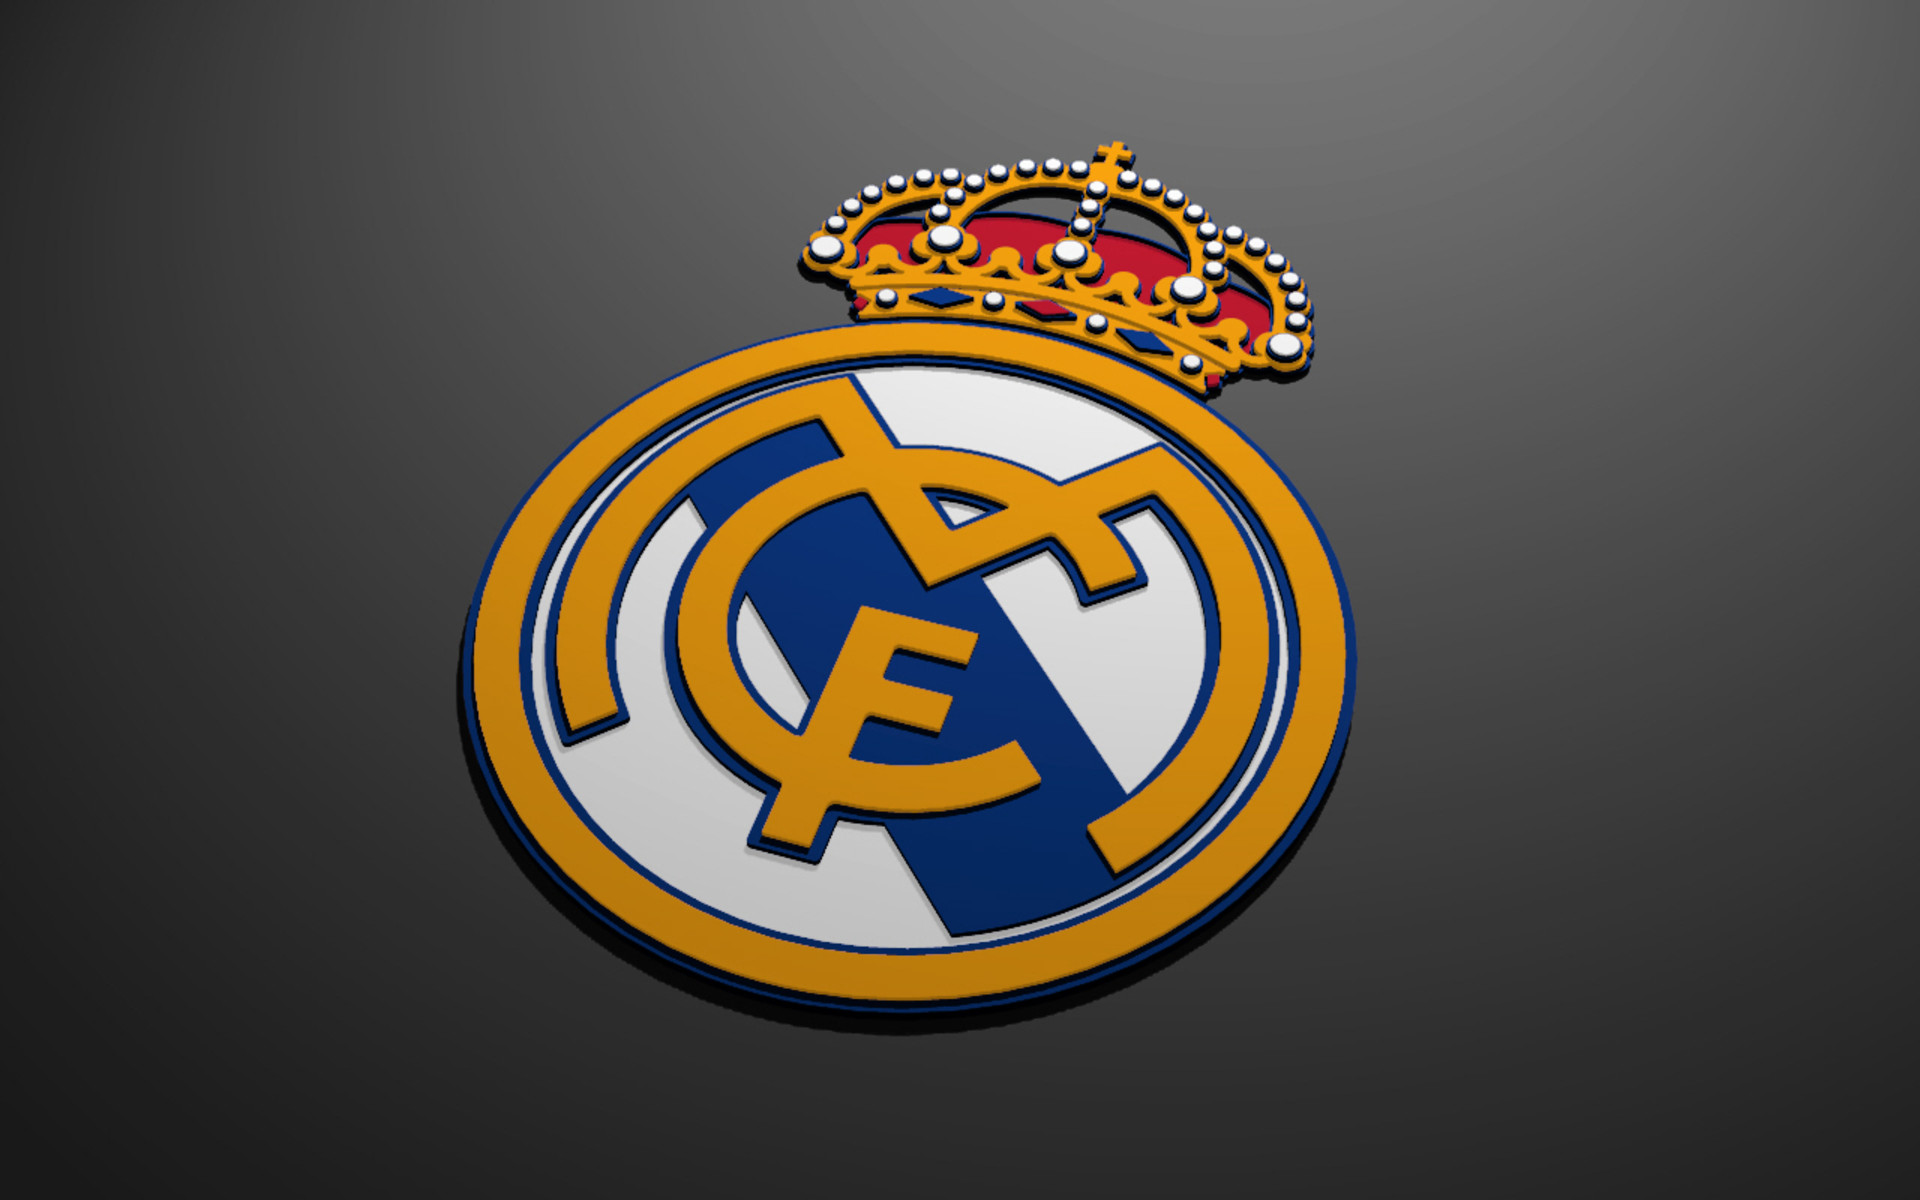 1920x1200 Real Madrid logo wallpaper HD.